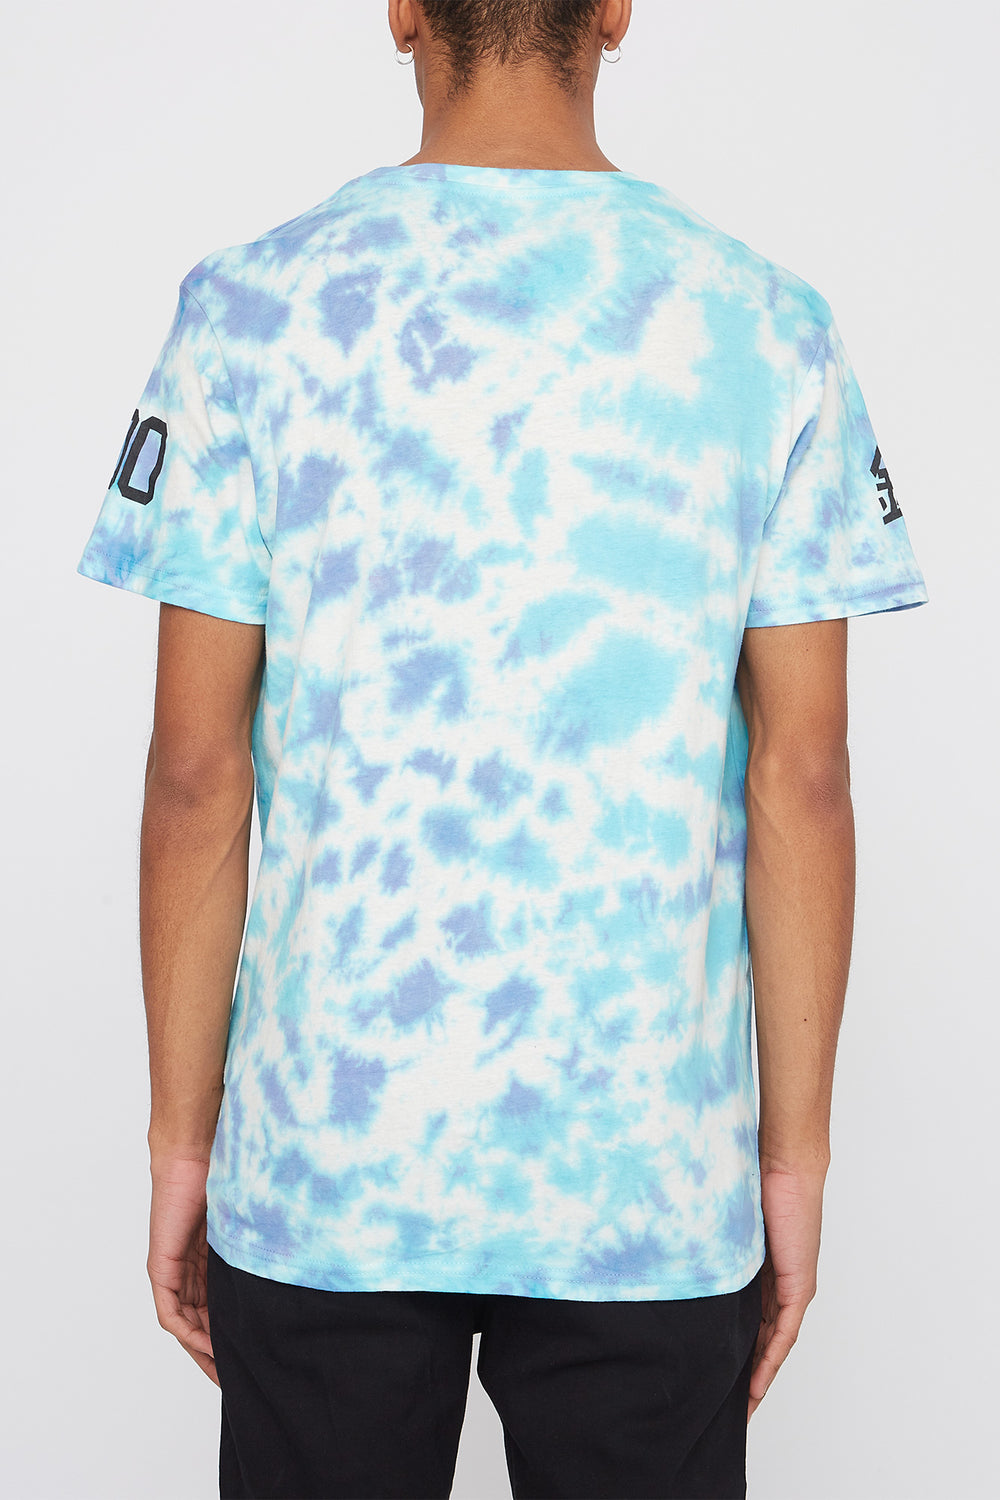 T-Shirt Tie-Dye Logo Young & Reckless Homme Bleu